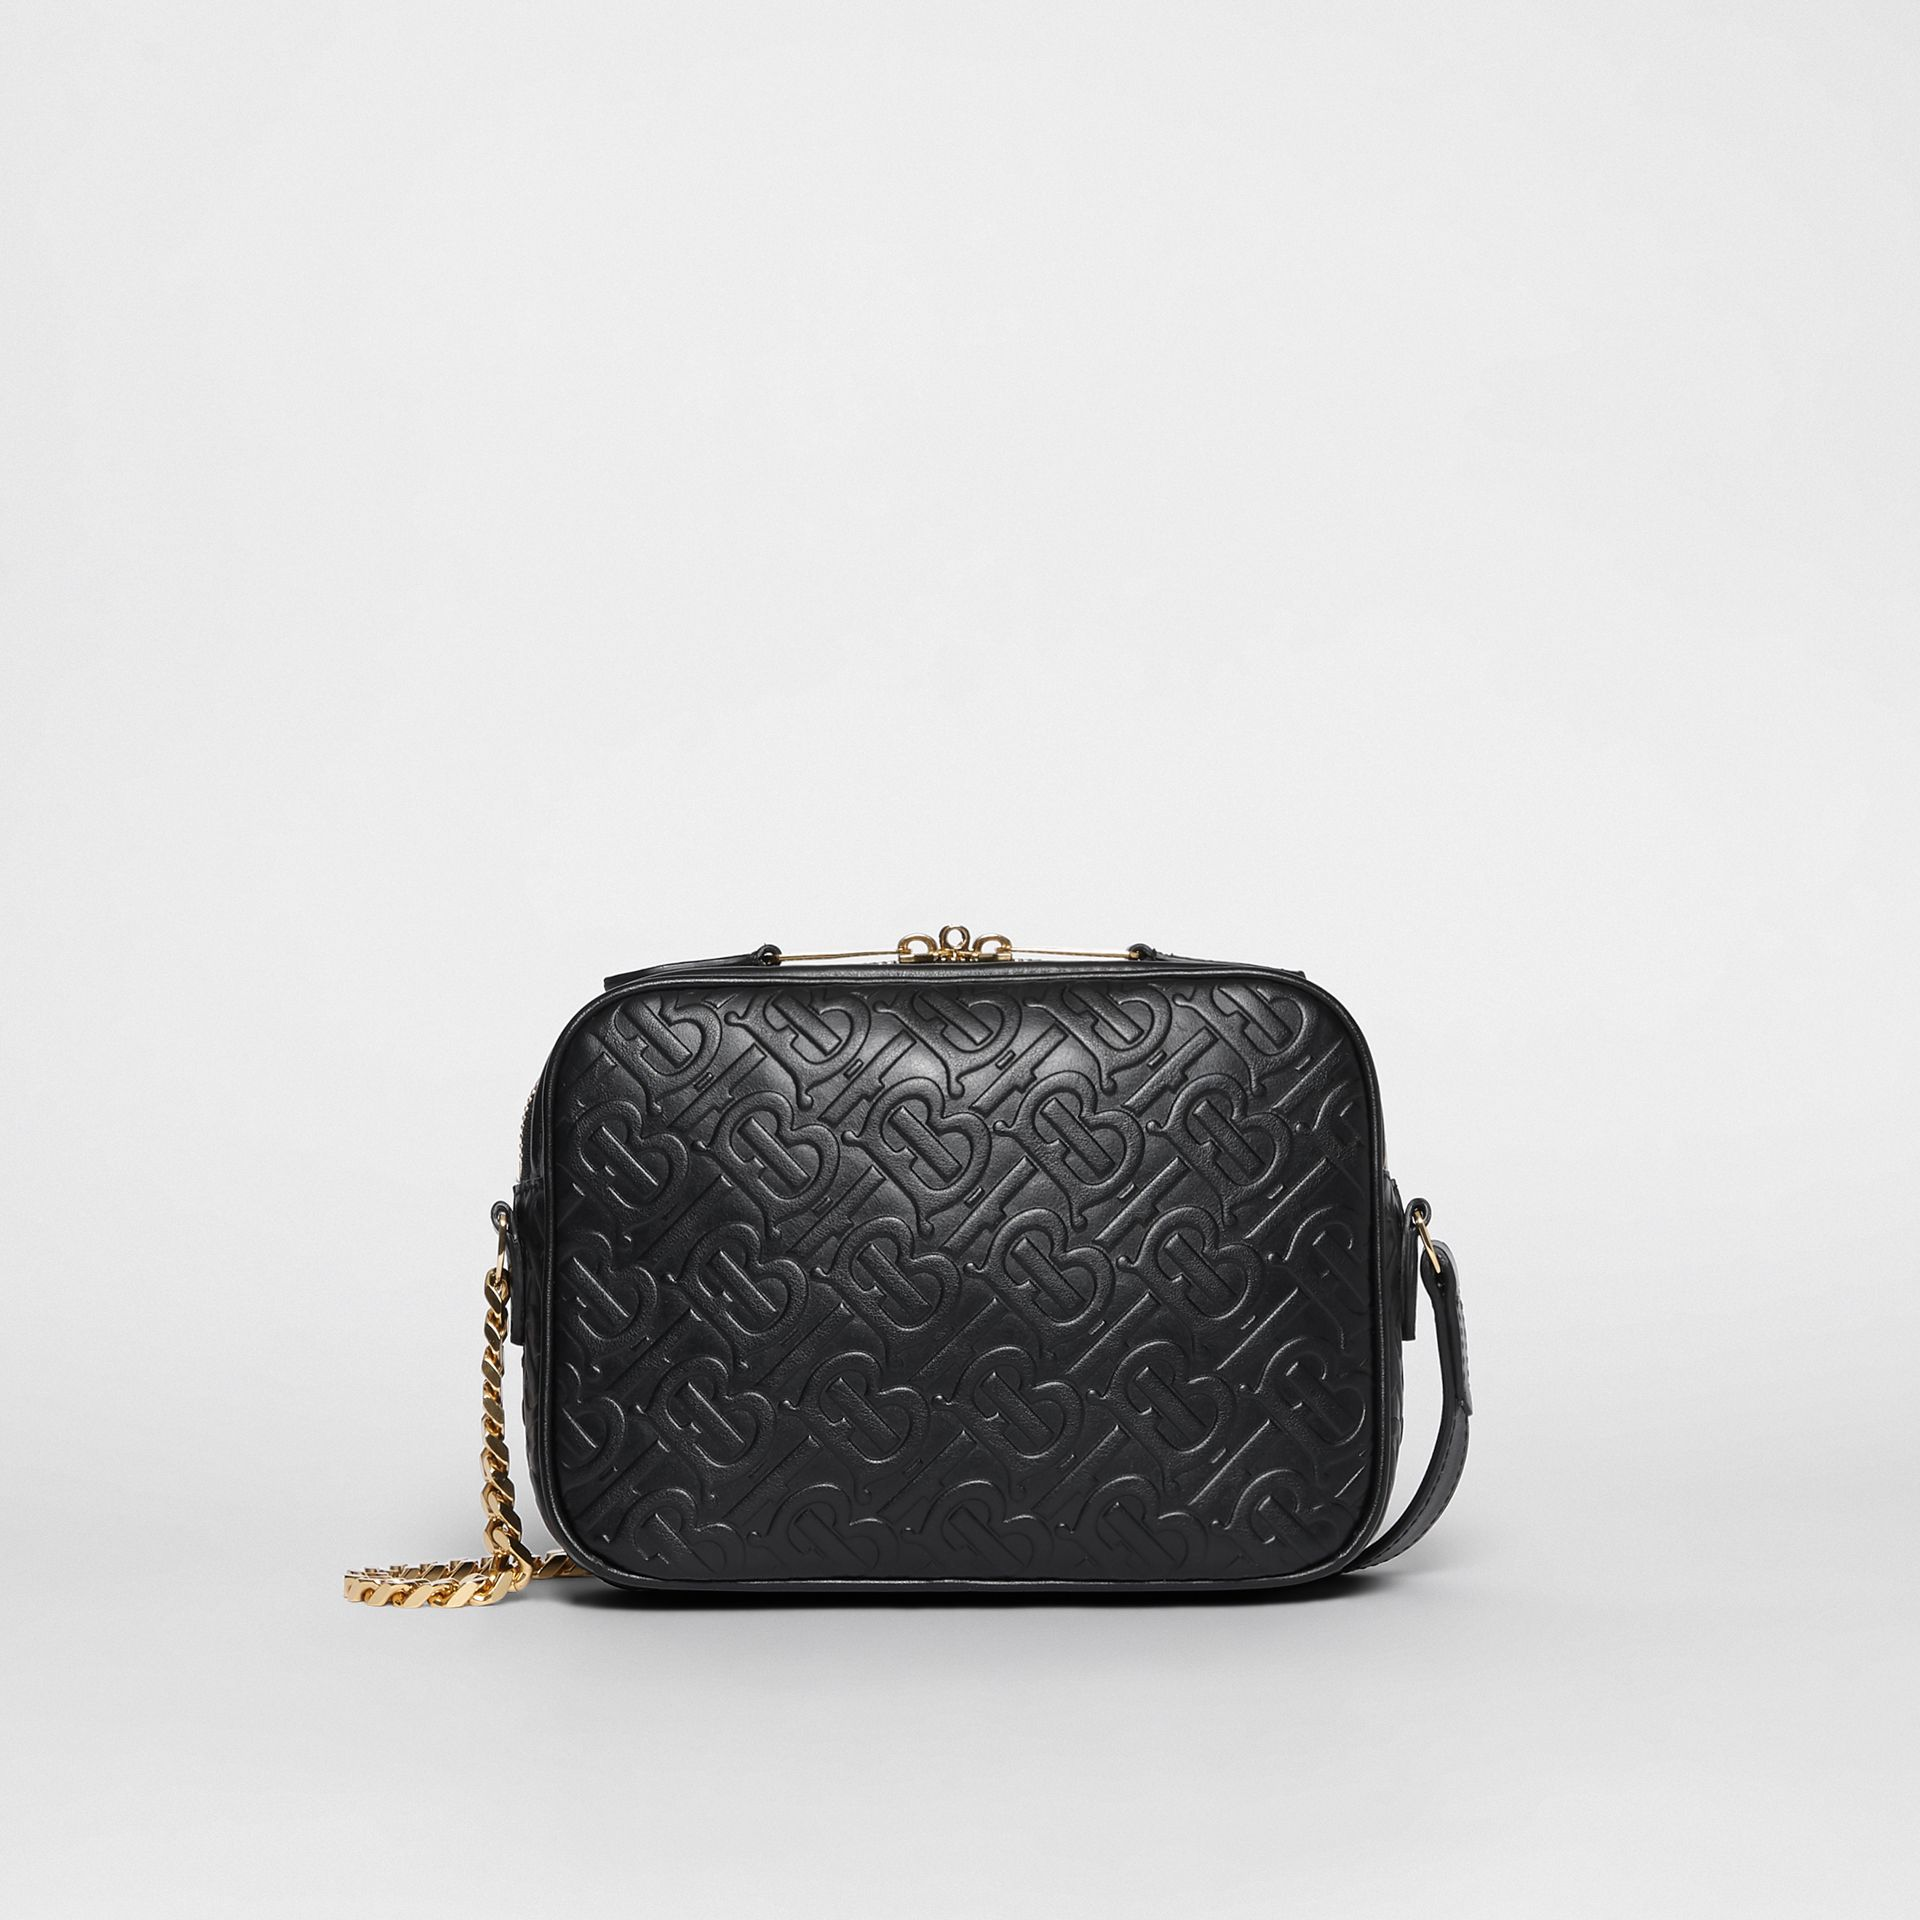 Monogram Leather Camera Bag in Black - Women | Burberry United States - gallery image 7